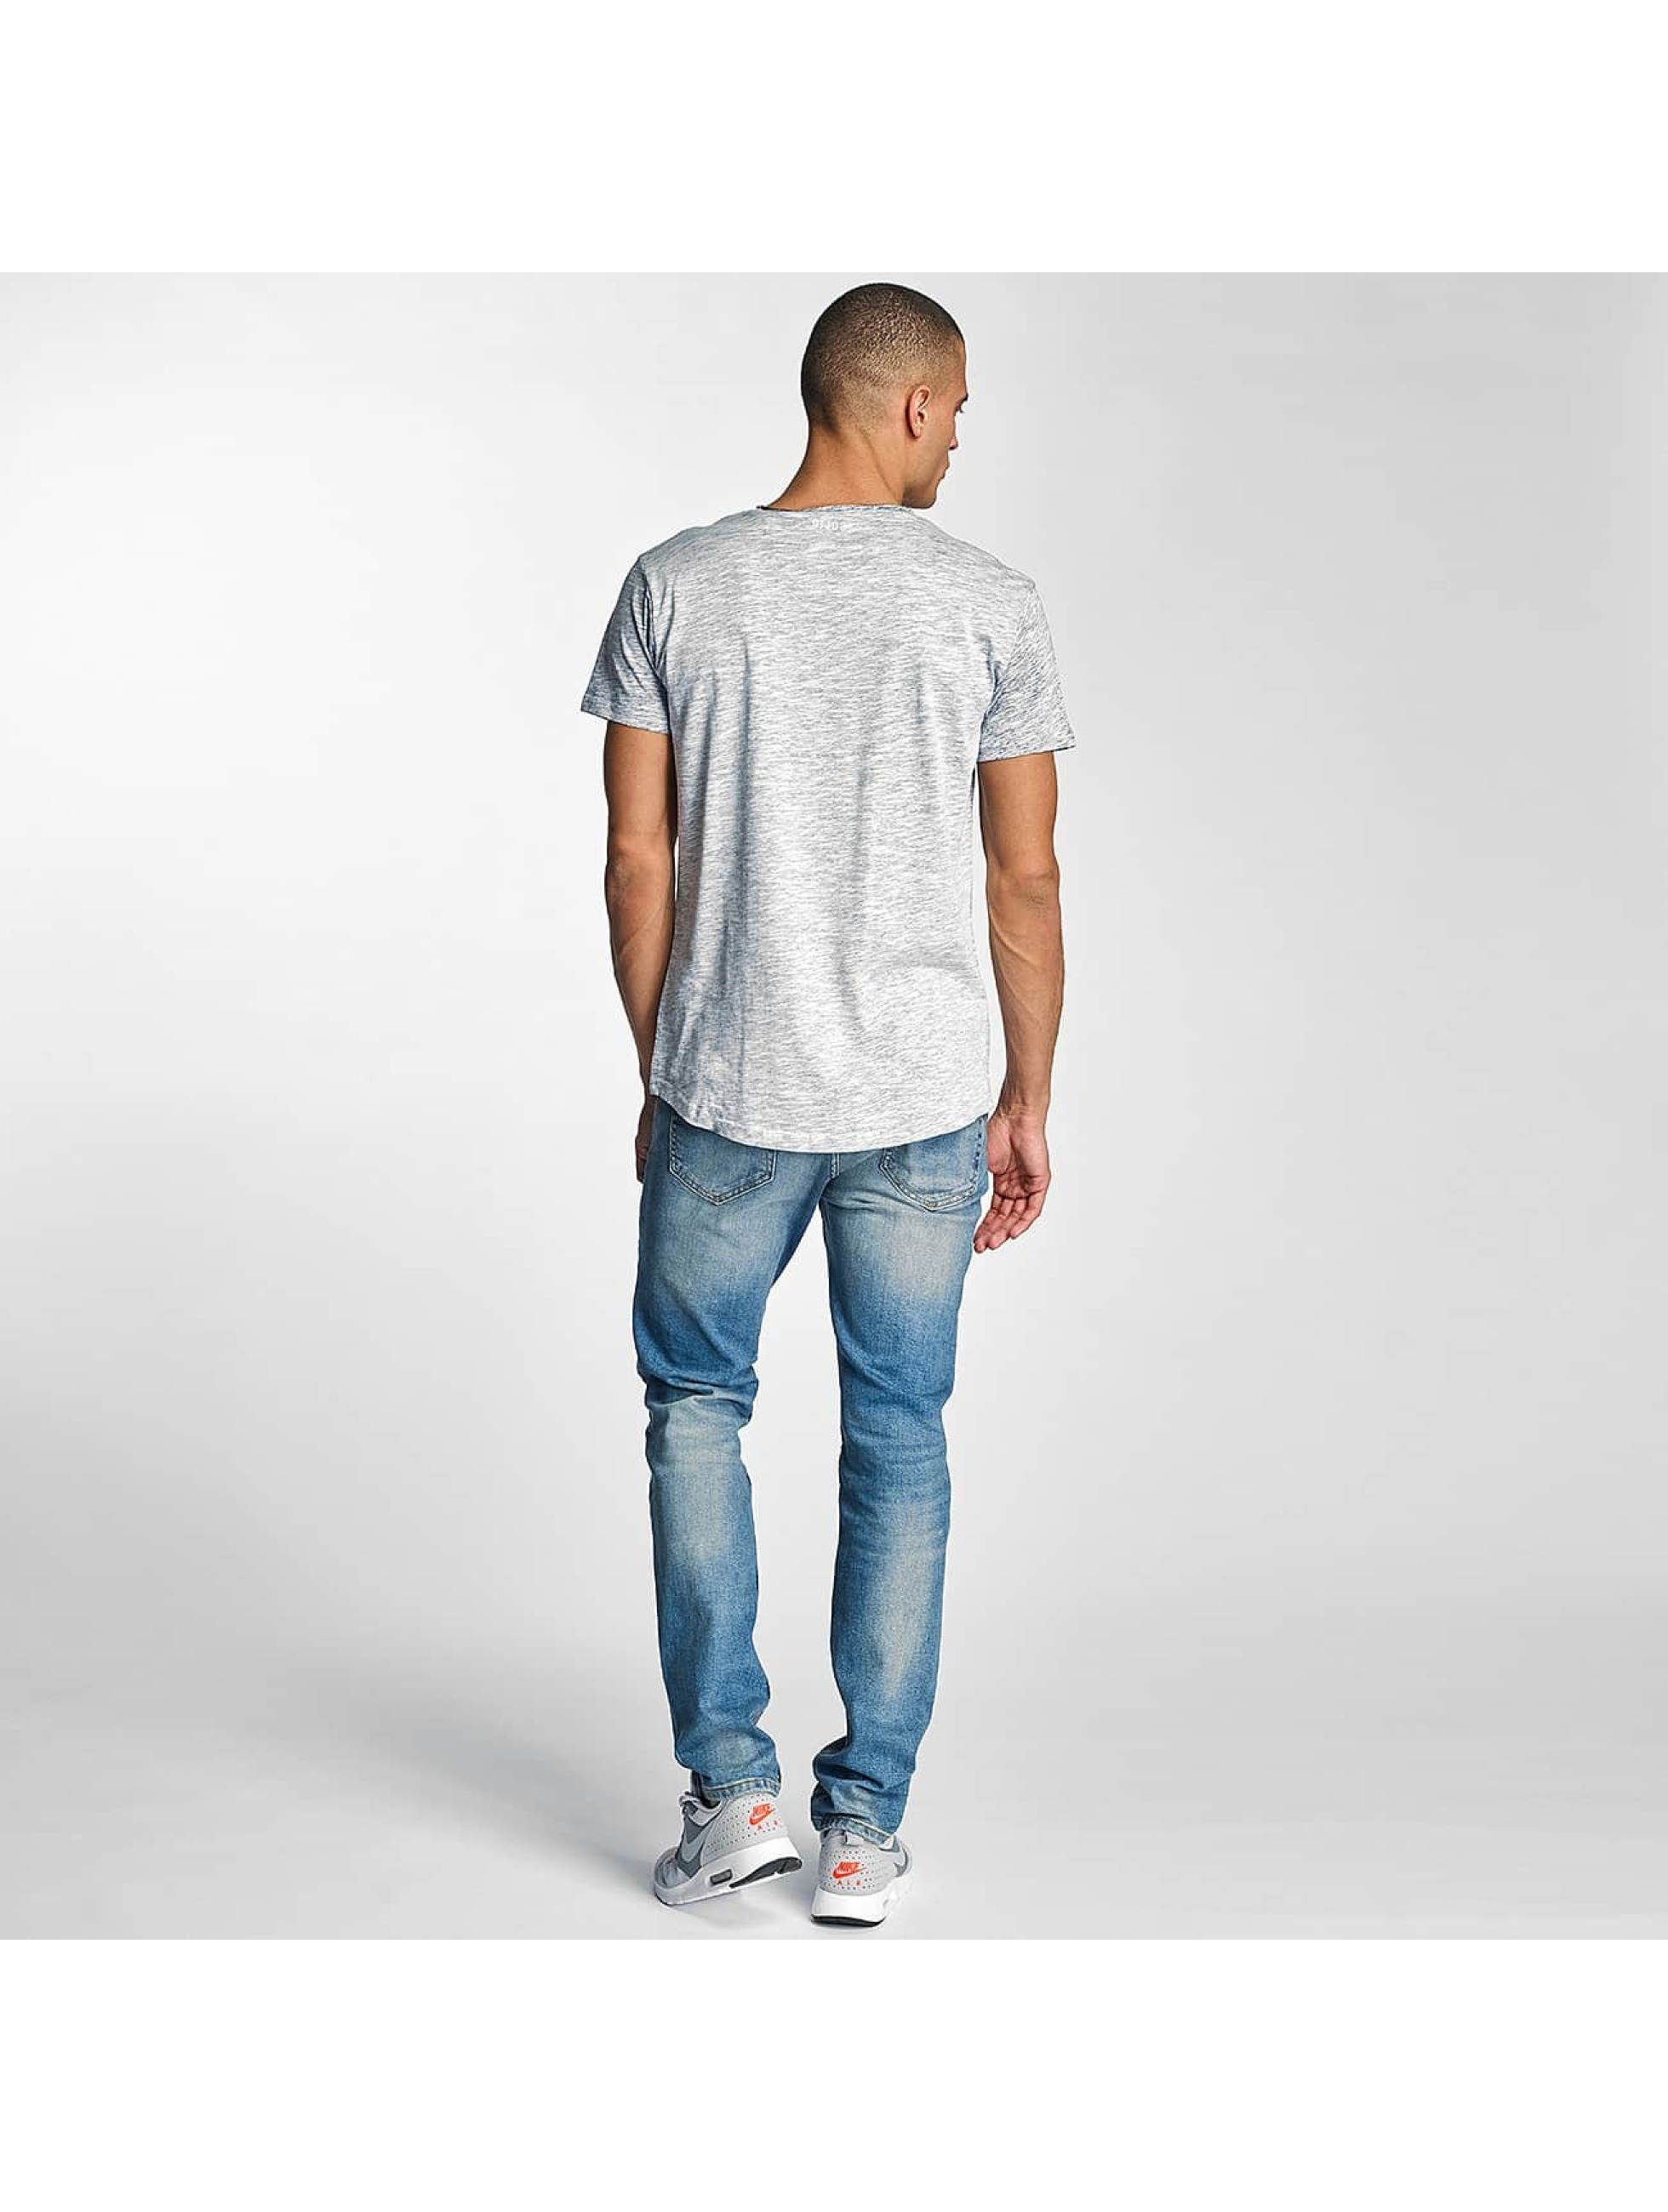 Solid T-Shirt Hamelin blue